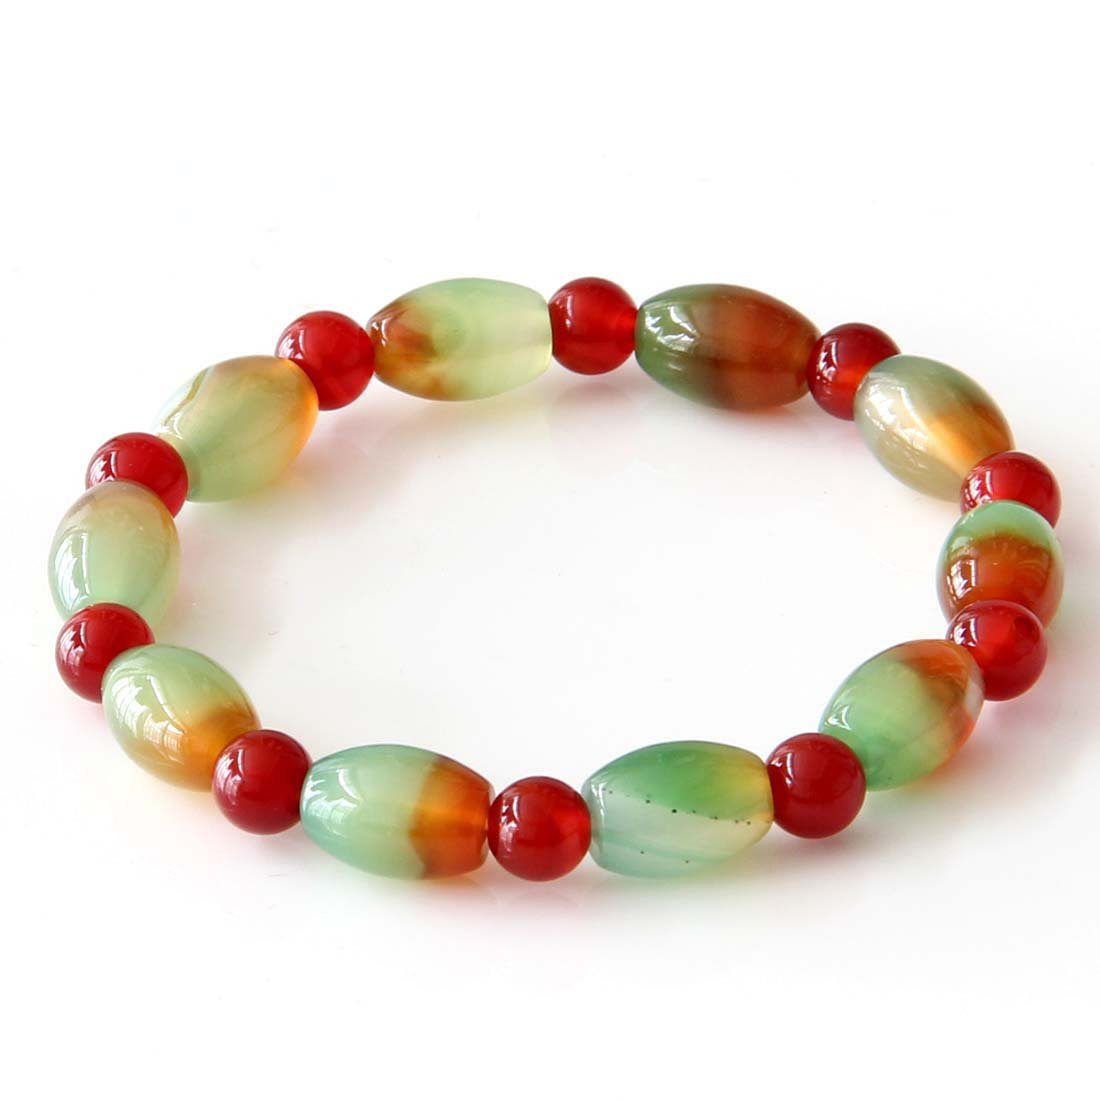 Peacock Stone And Red Agate Beads Bracelet  T2798